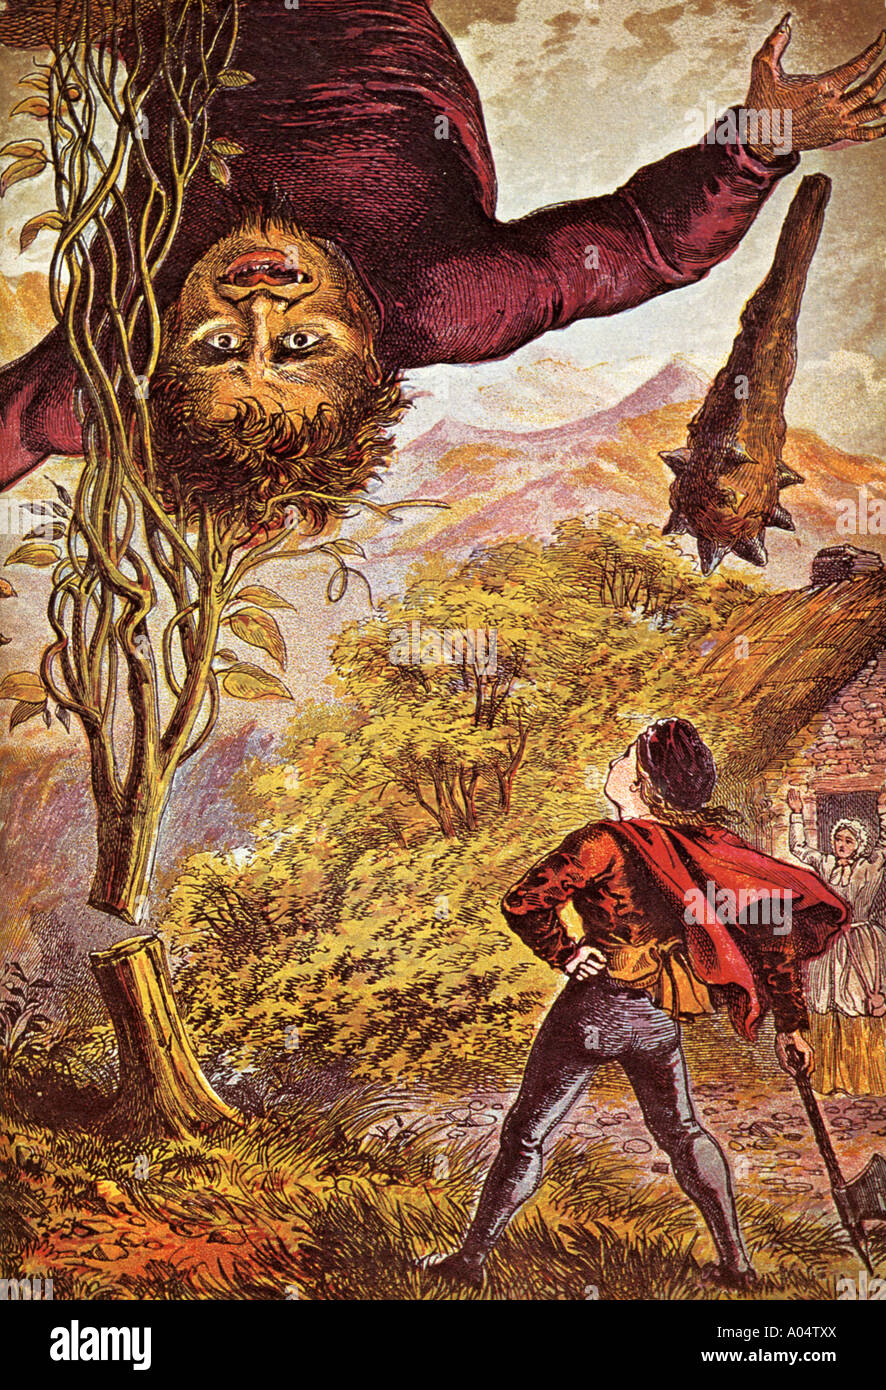 JACK AND THE BEANSTALK in a book illustration from 1871 - Stock Image